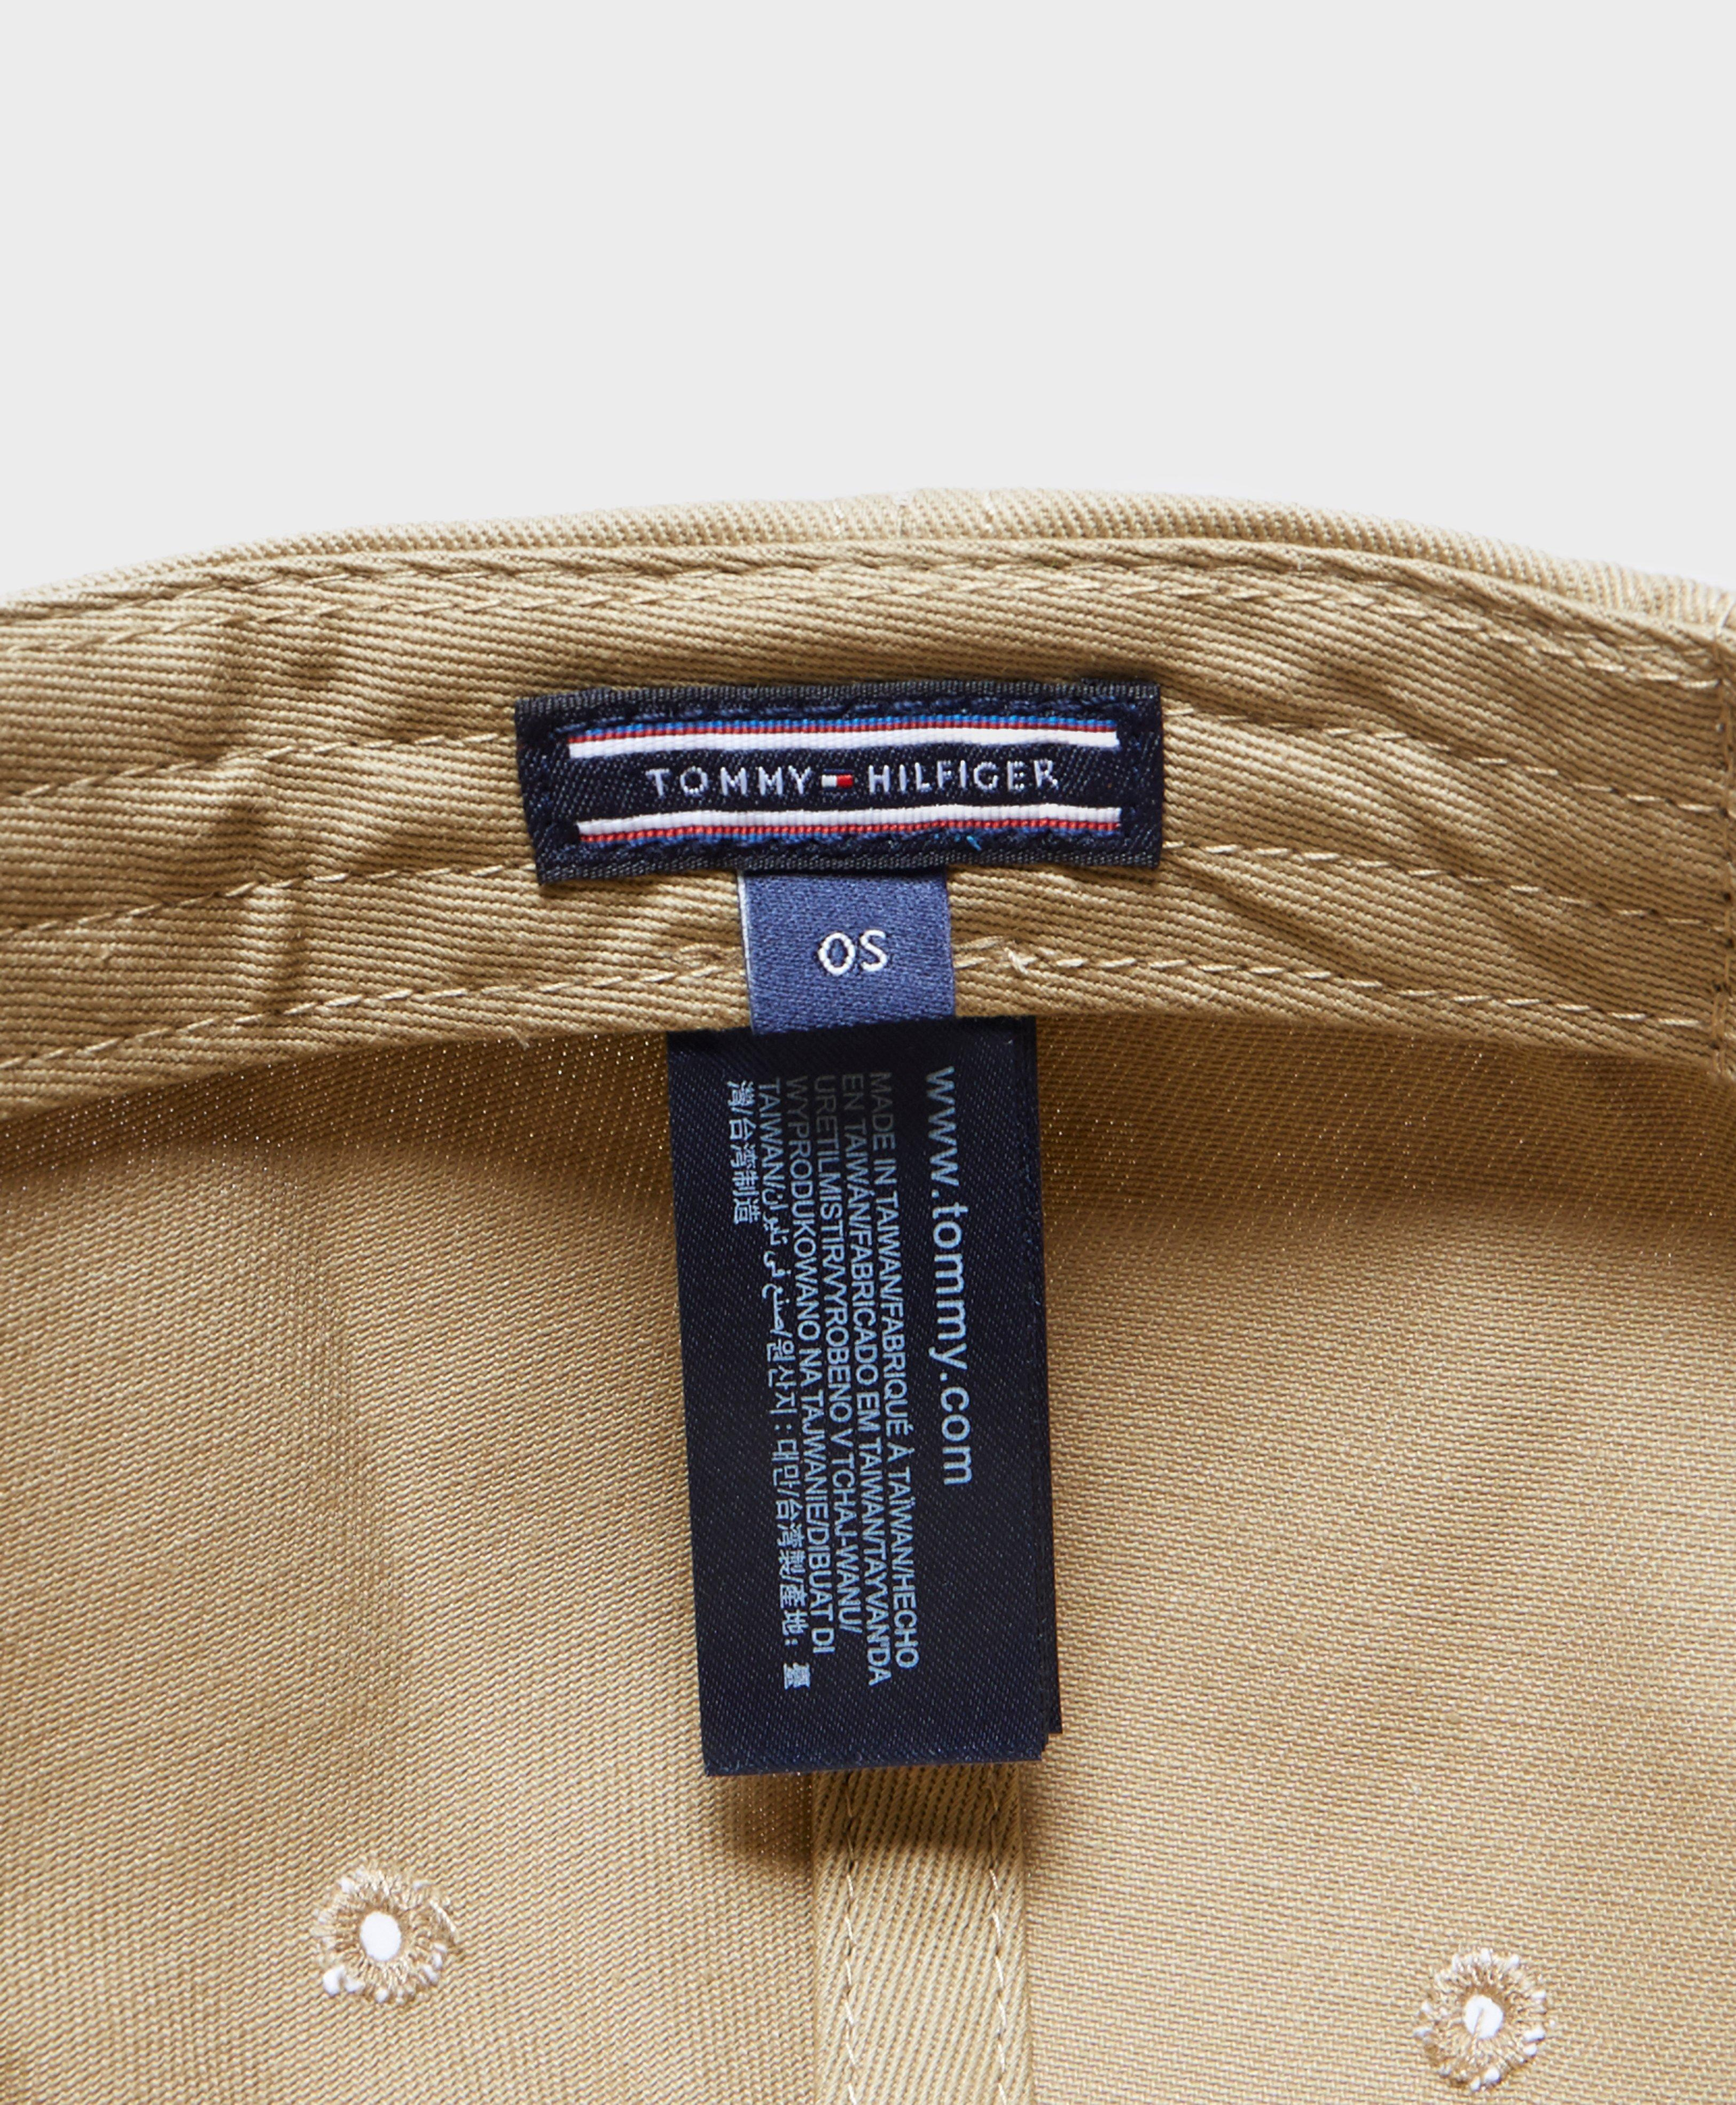 6caebd4907ebf Tommy Hilfiger Small Logo Baseball Cap in Natural for Men - Lyst